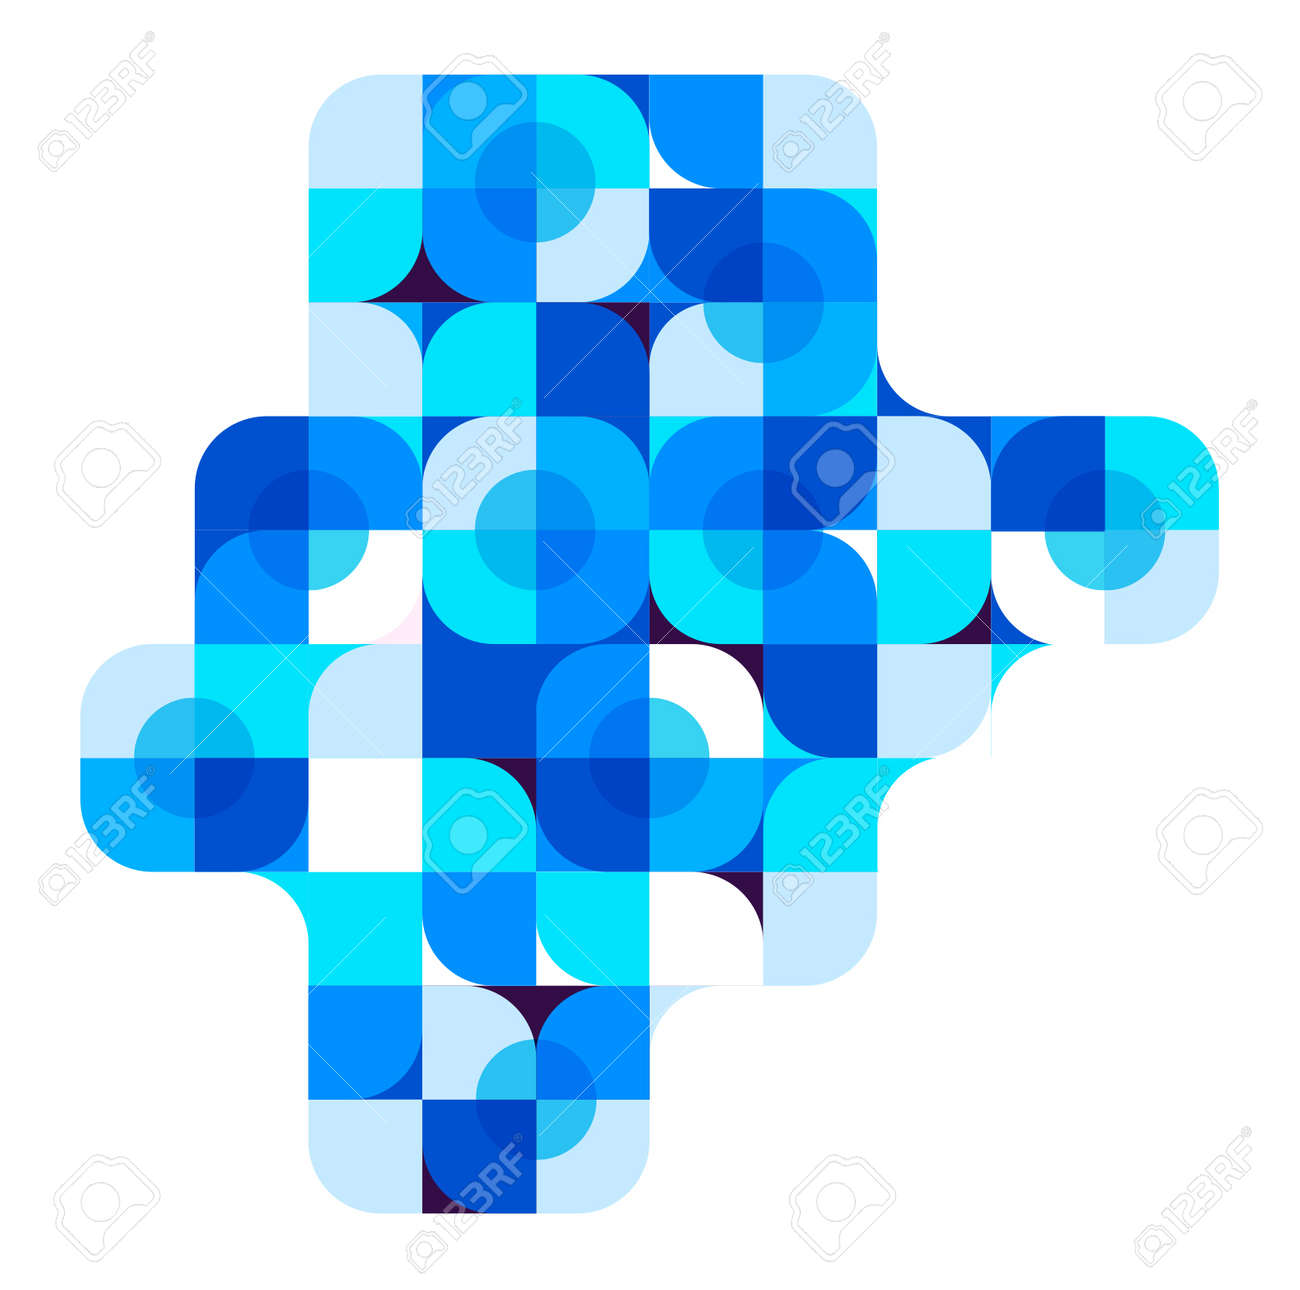 Vector Abstract Blue Geometric Background - 38662570